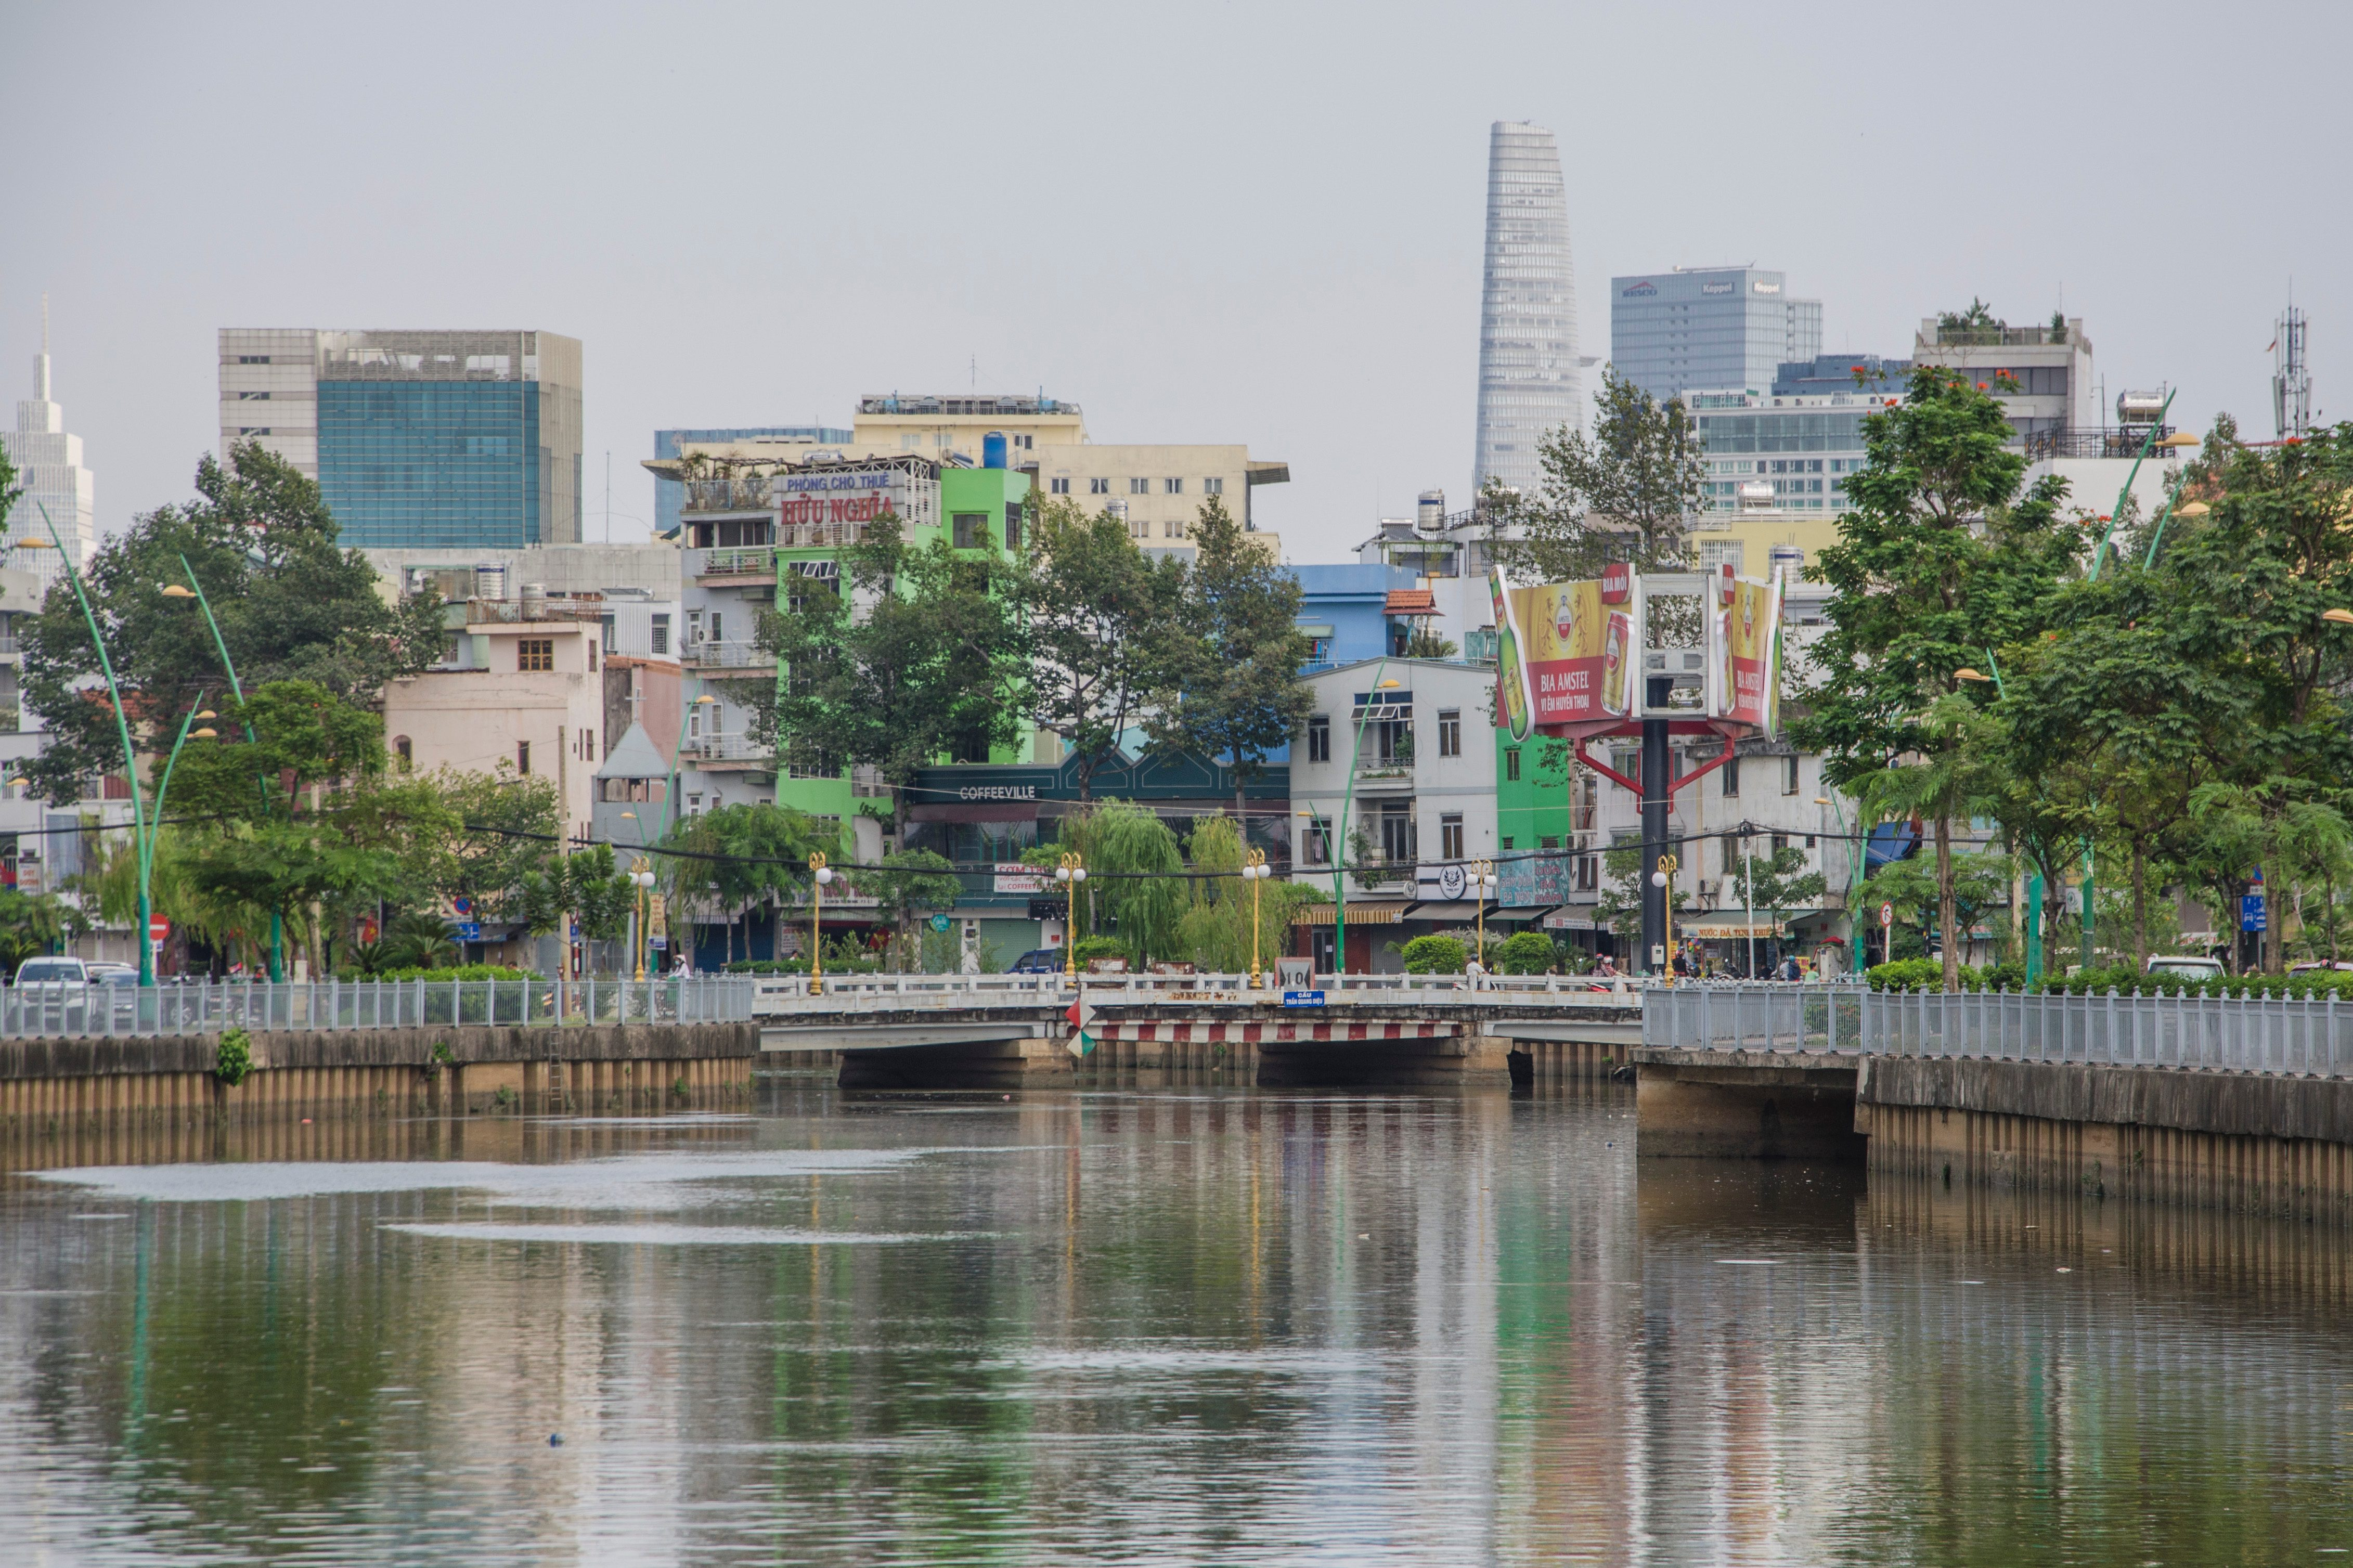 Saigon cleaning its major canal for $1.5 million